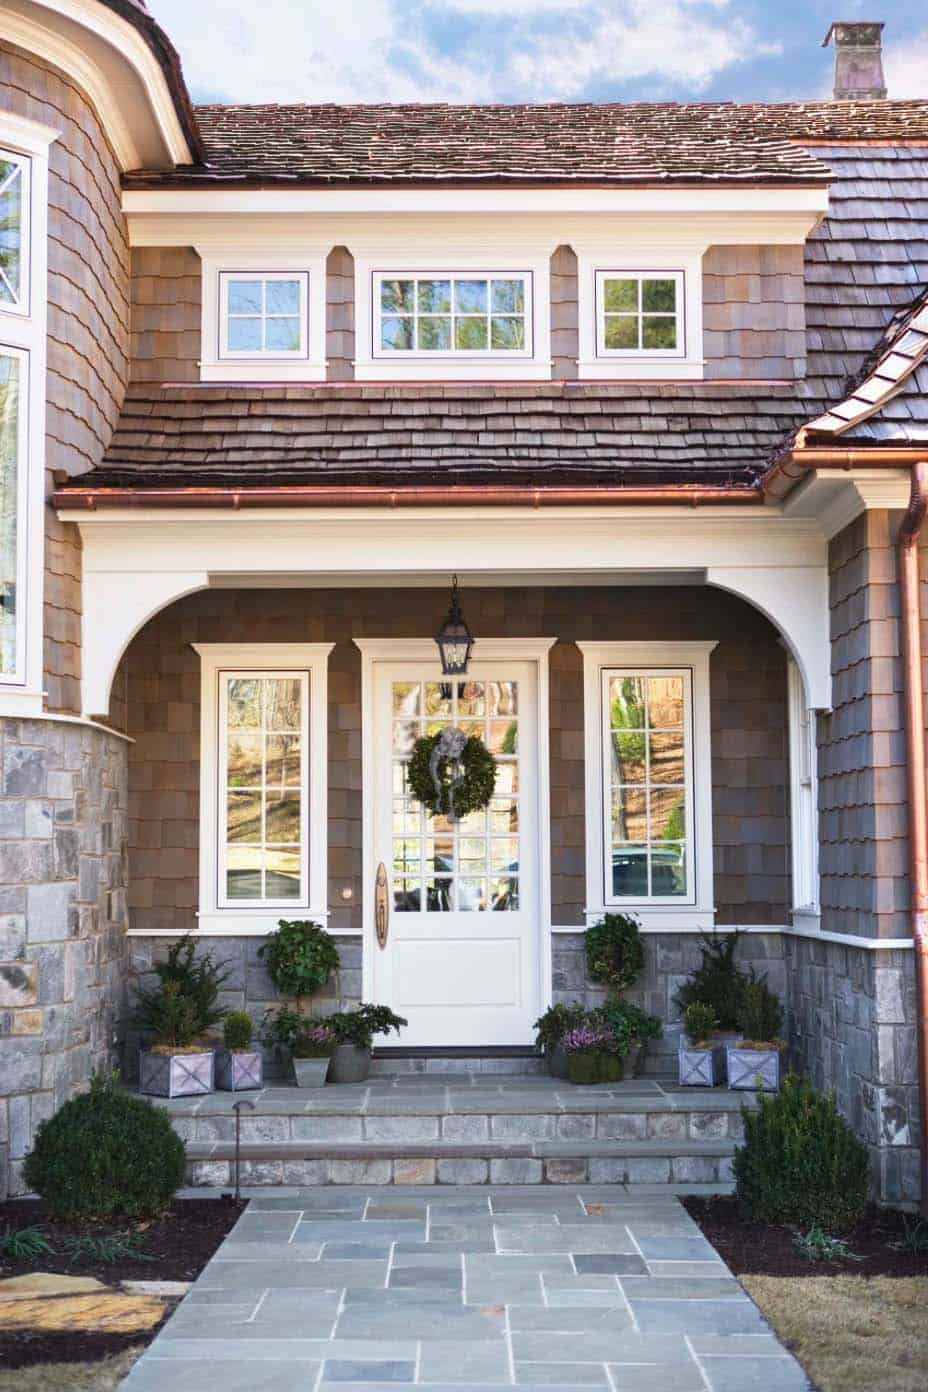 Shingle Style Cottage-Linda McDougald Design-01-1 Kindesign